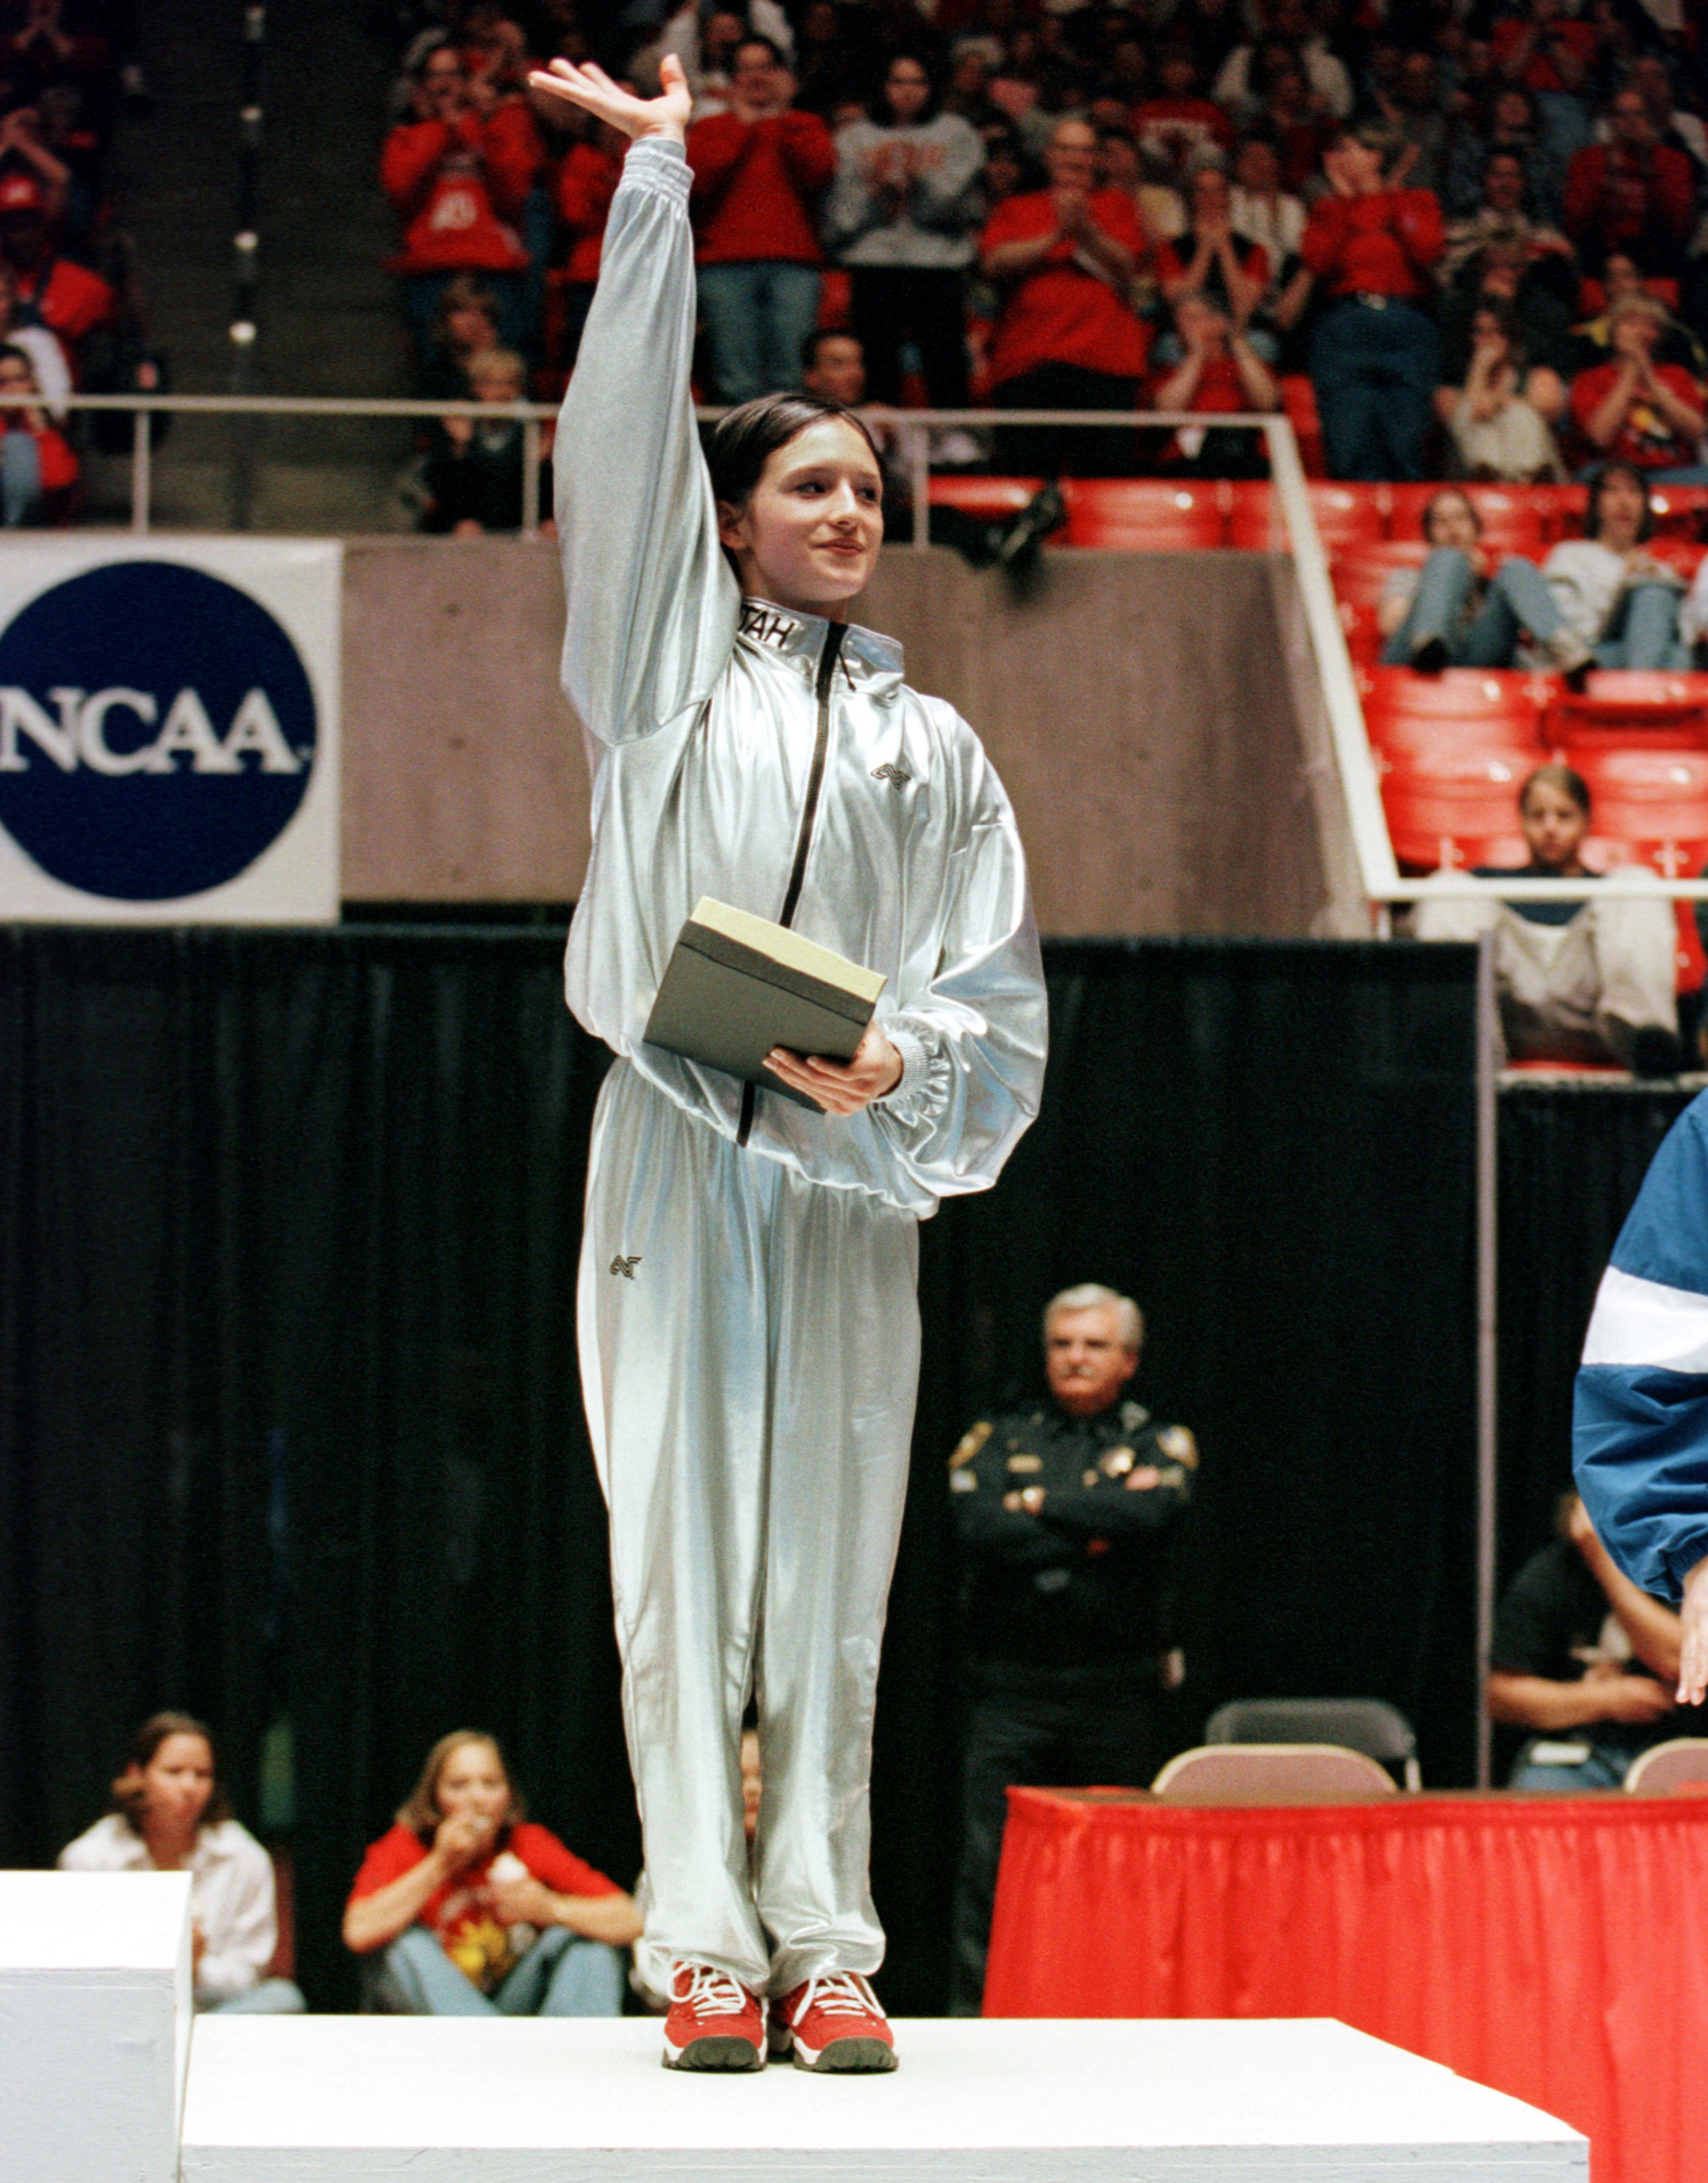 Theresa at the 1999 NCAA Championships in Salt Lake City, Utah - I earned the NCAA all-around and balance beam titles and runner-up on floor and vault